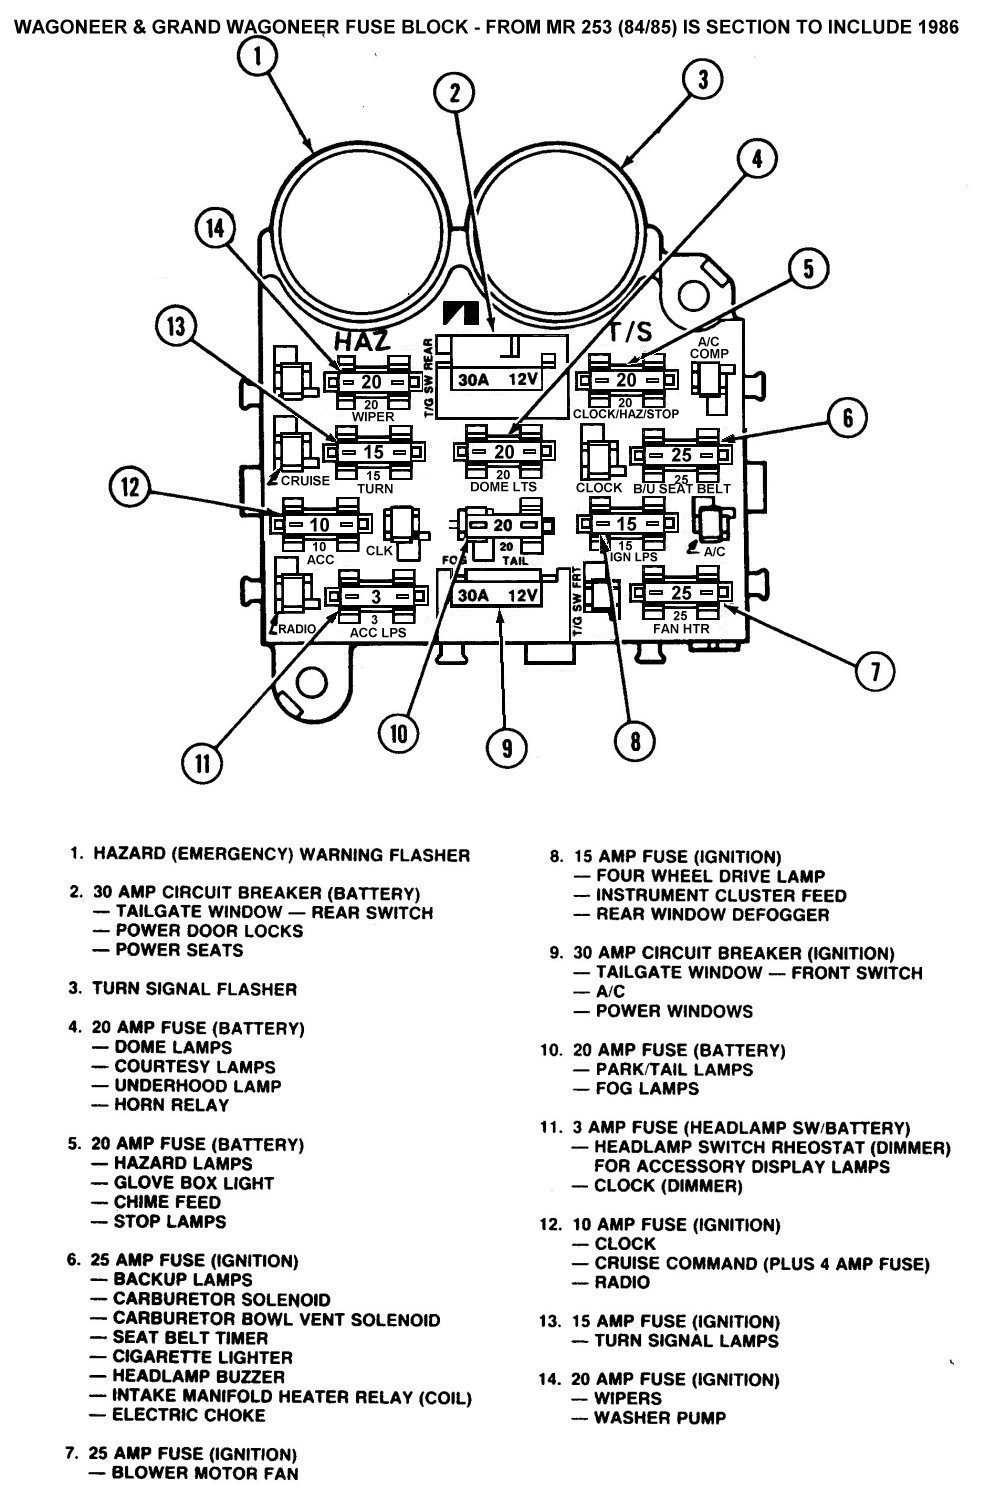 hight resolution of related with 86 corvette fuse block diagram wiring schematic